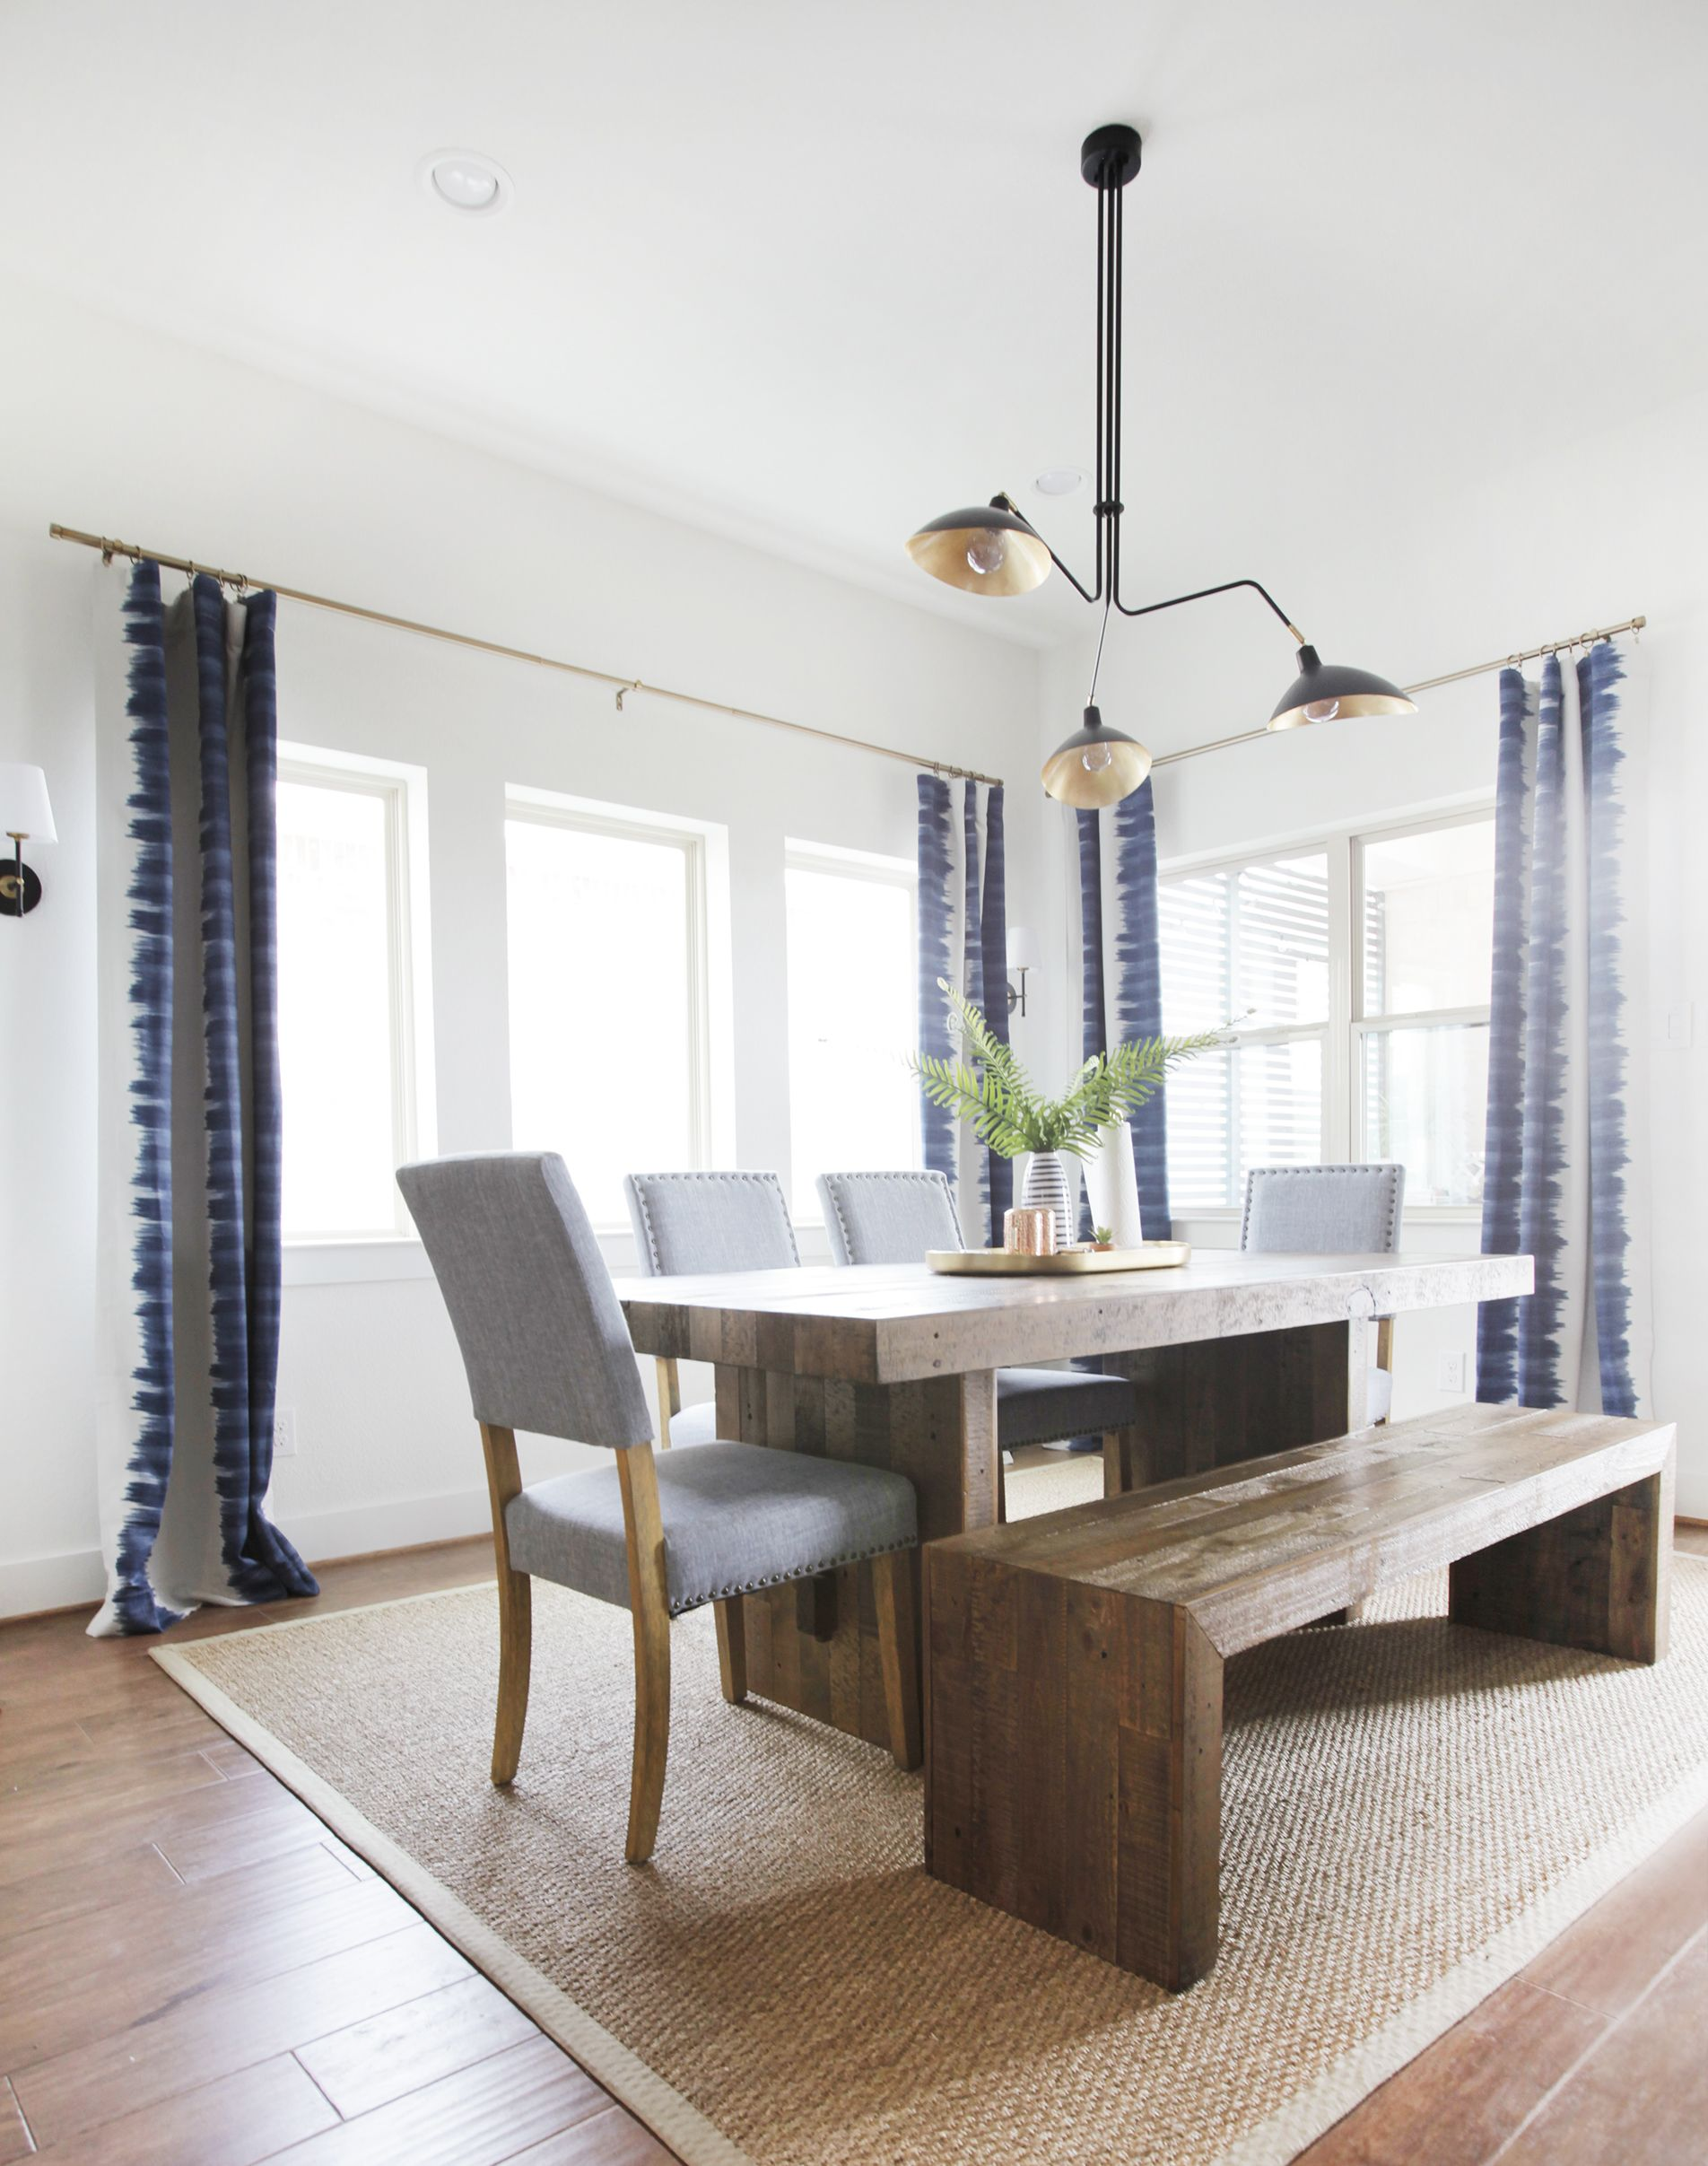 Dining Room Reveal PLUS a Giveaway! | Finished dining room, Boho interior  design, Rooms reveal